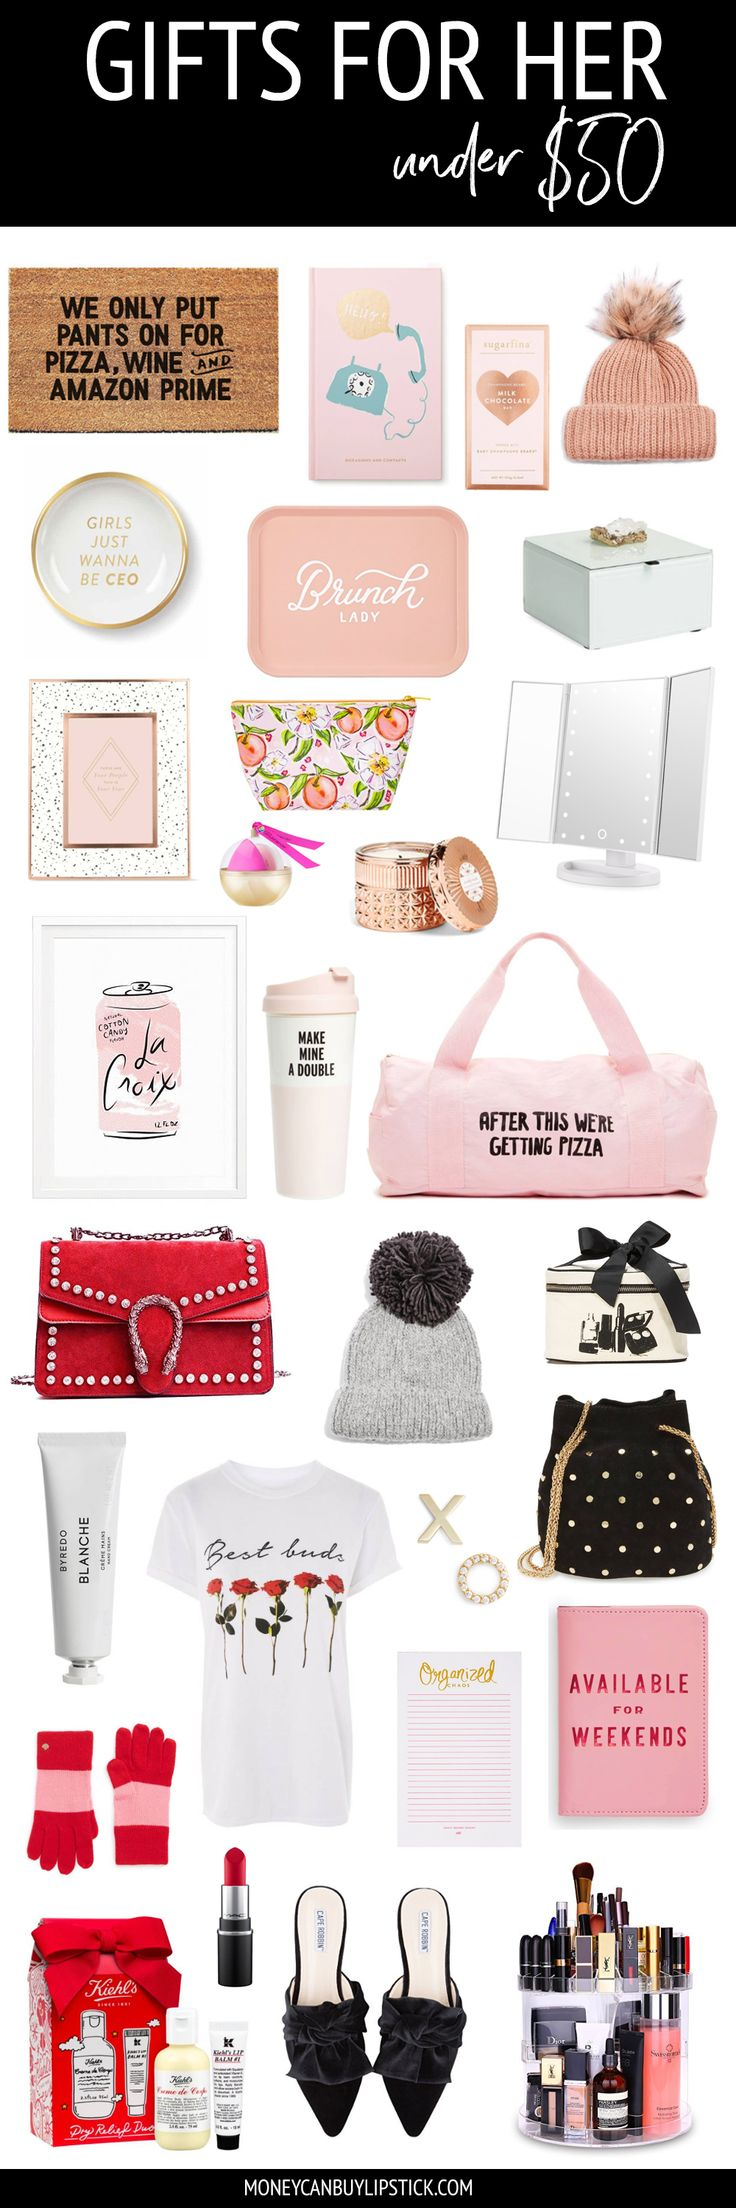 Gifts For Her Under $50 | Christmas Gift Ideas | Holiday Gift Ideas | Best Friend Gift Ideas | Sister Gift Ideas | Affordable Gift Ideas | Girly Gifts